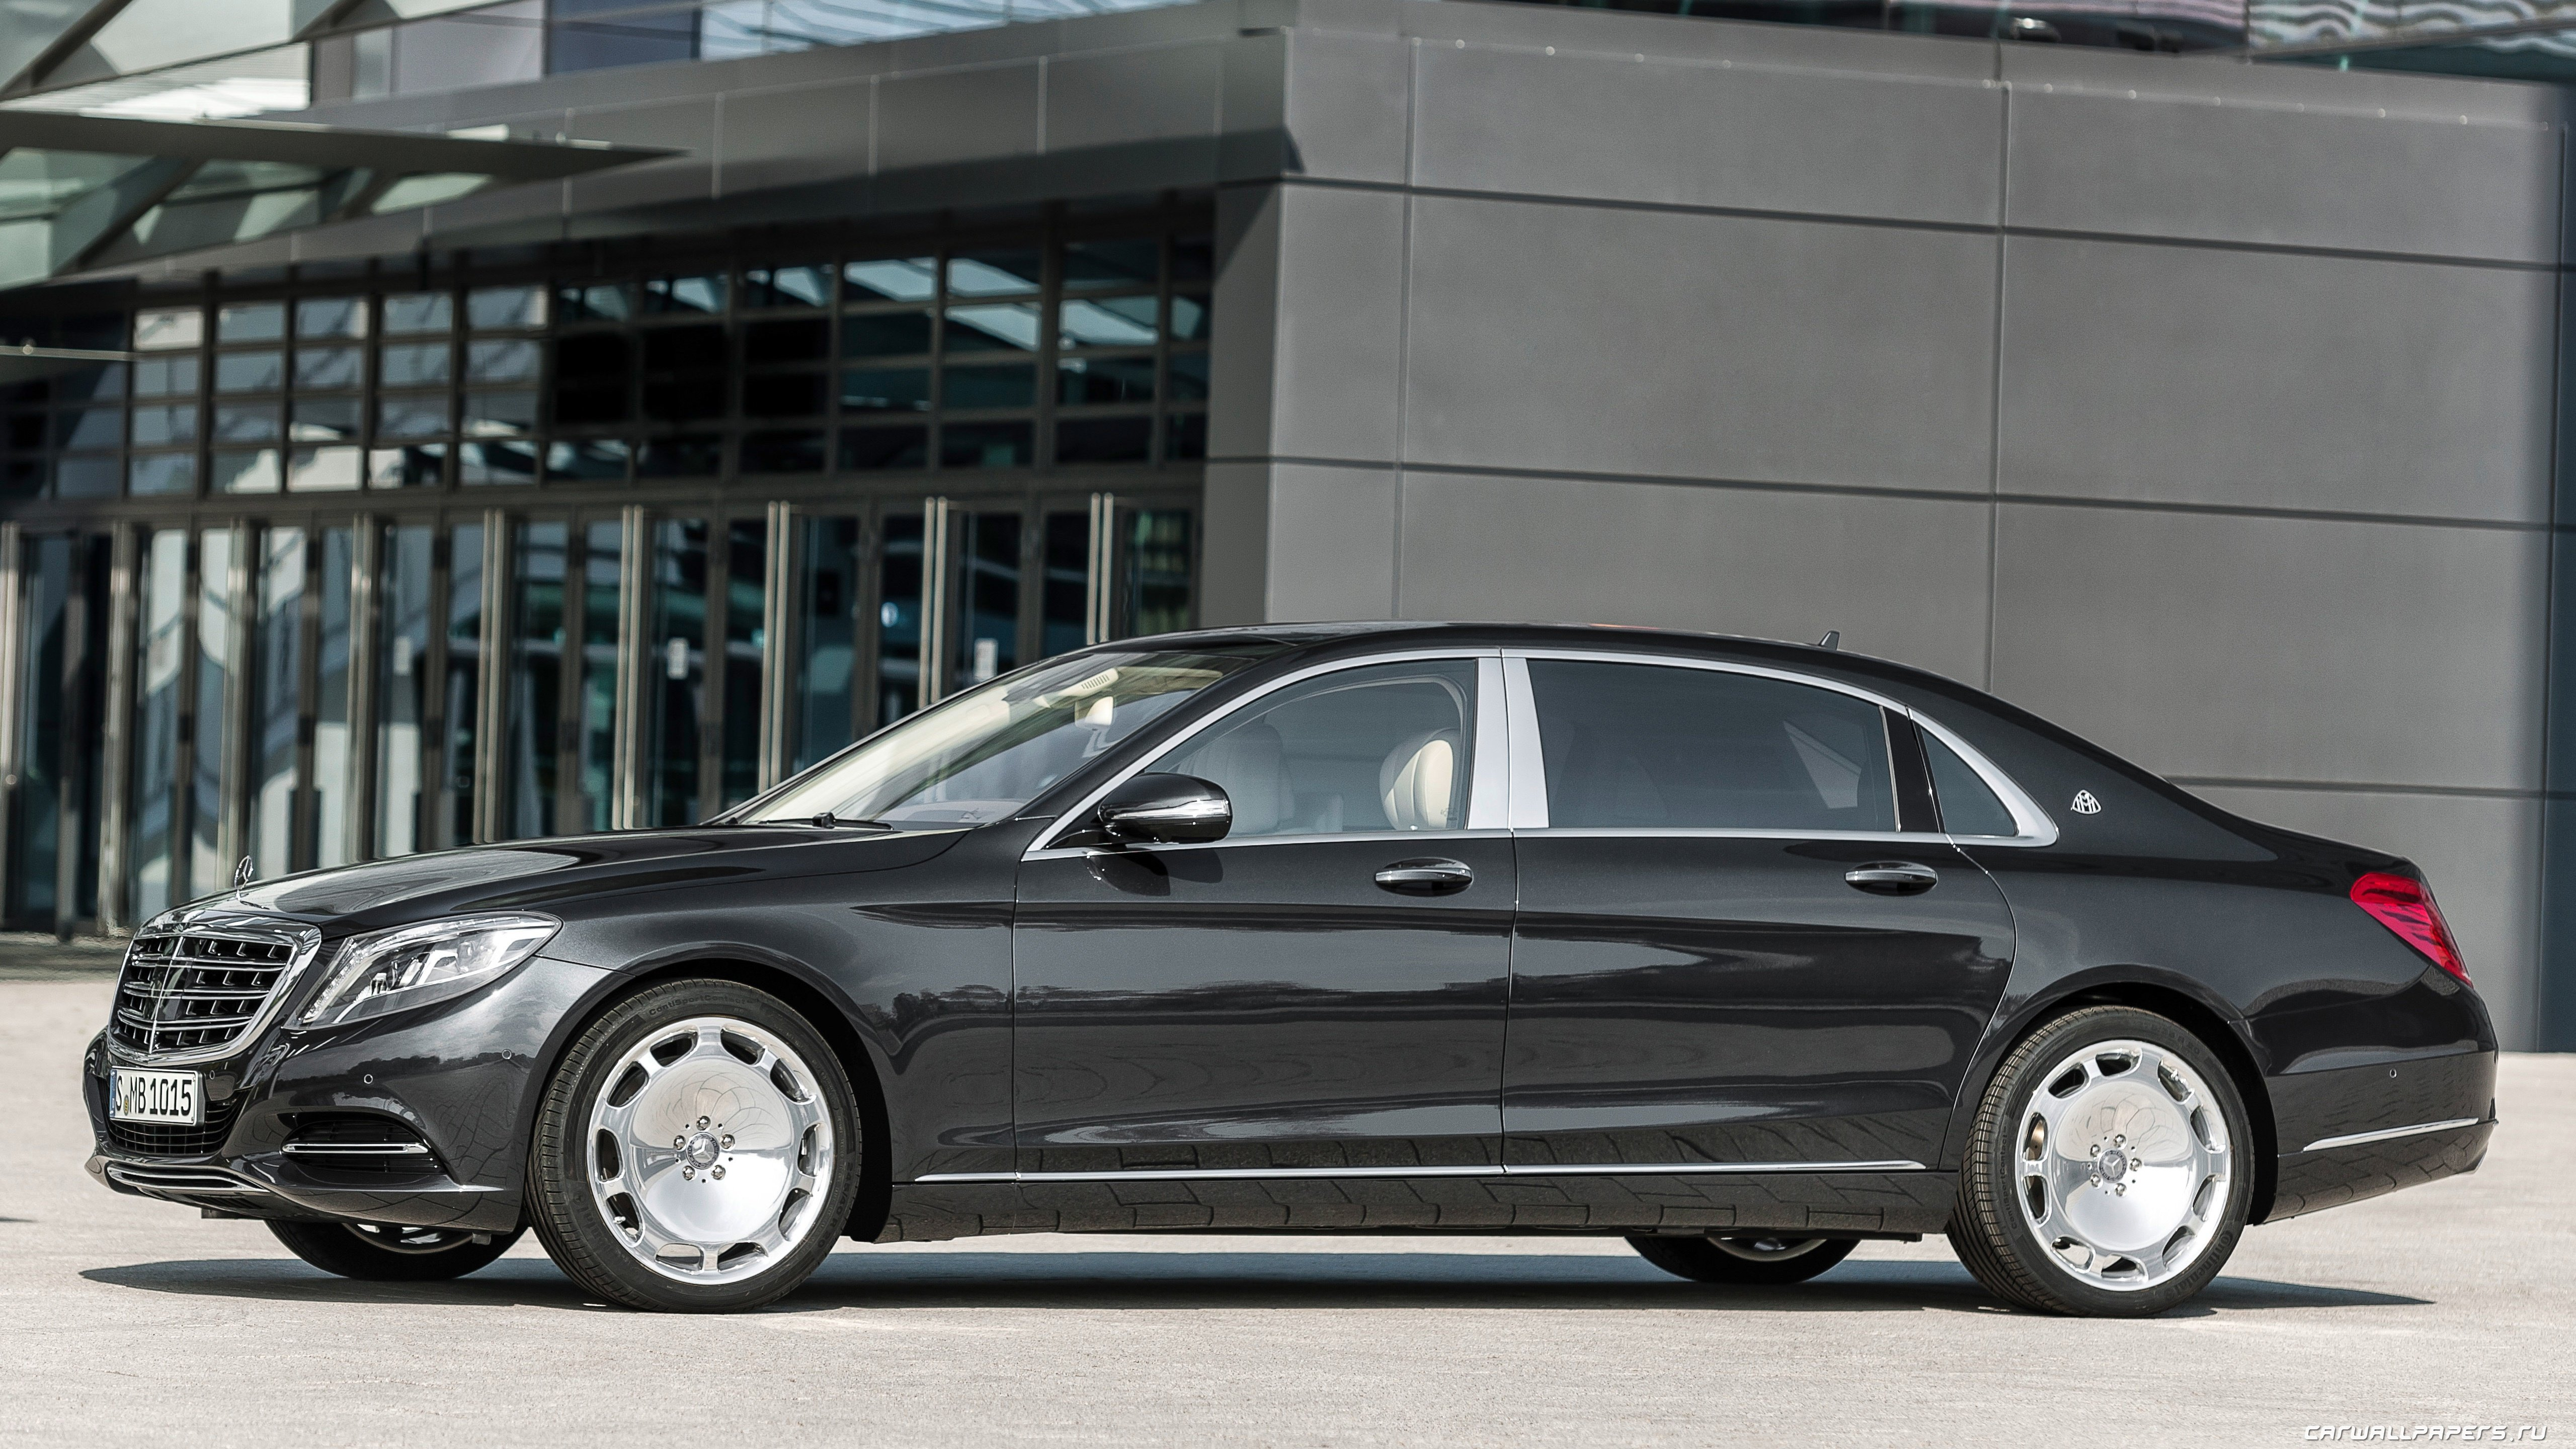 Mercedes Maybach S600 HD wallpapers download 5120x2880